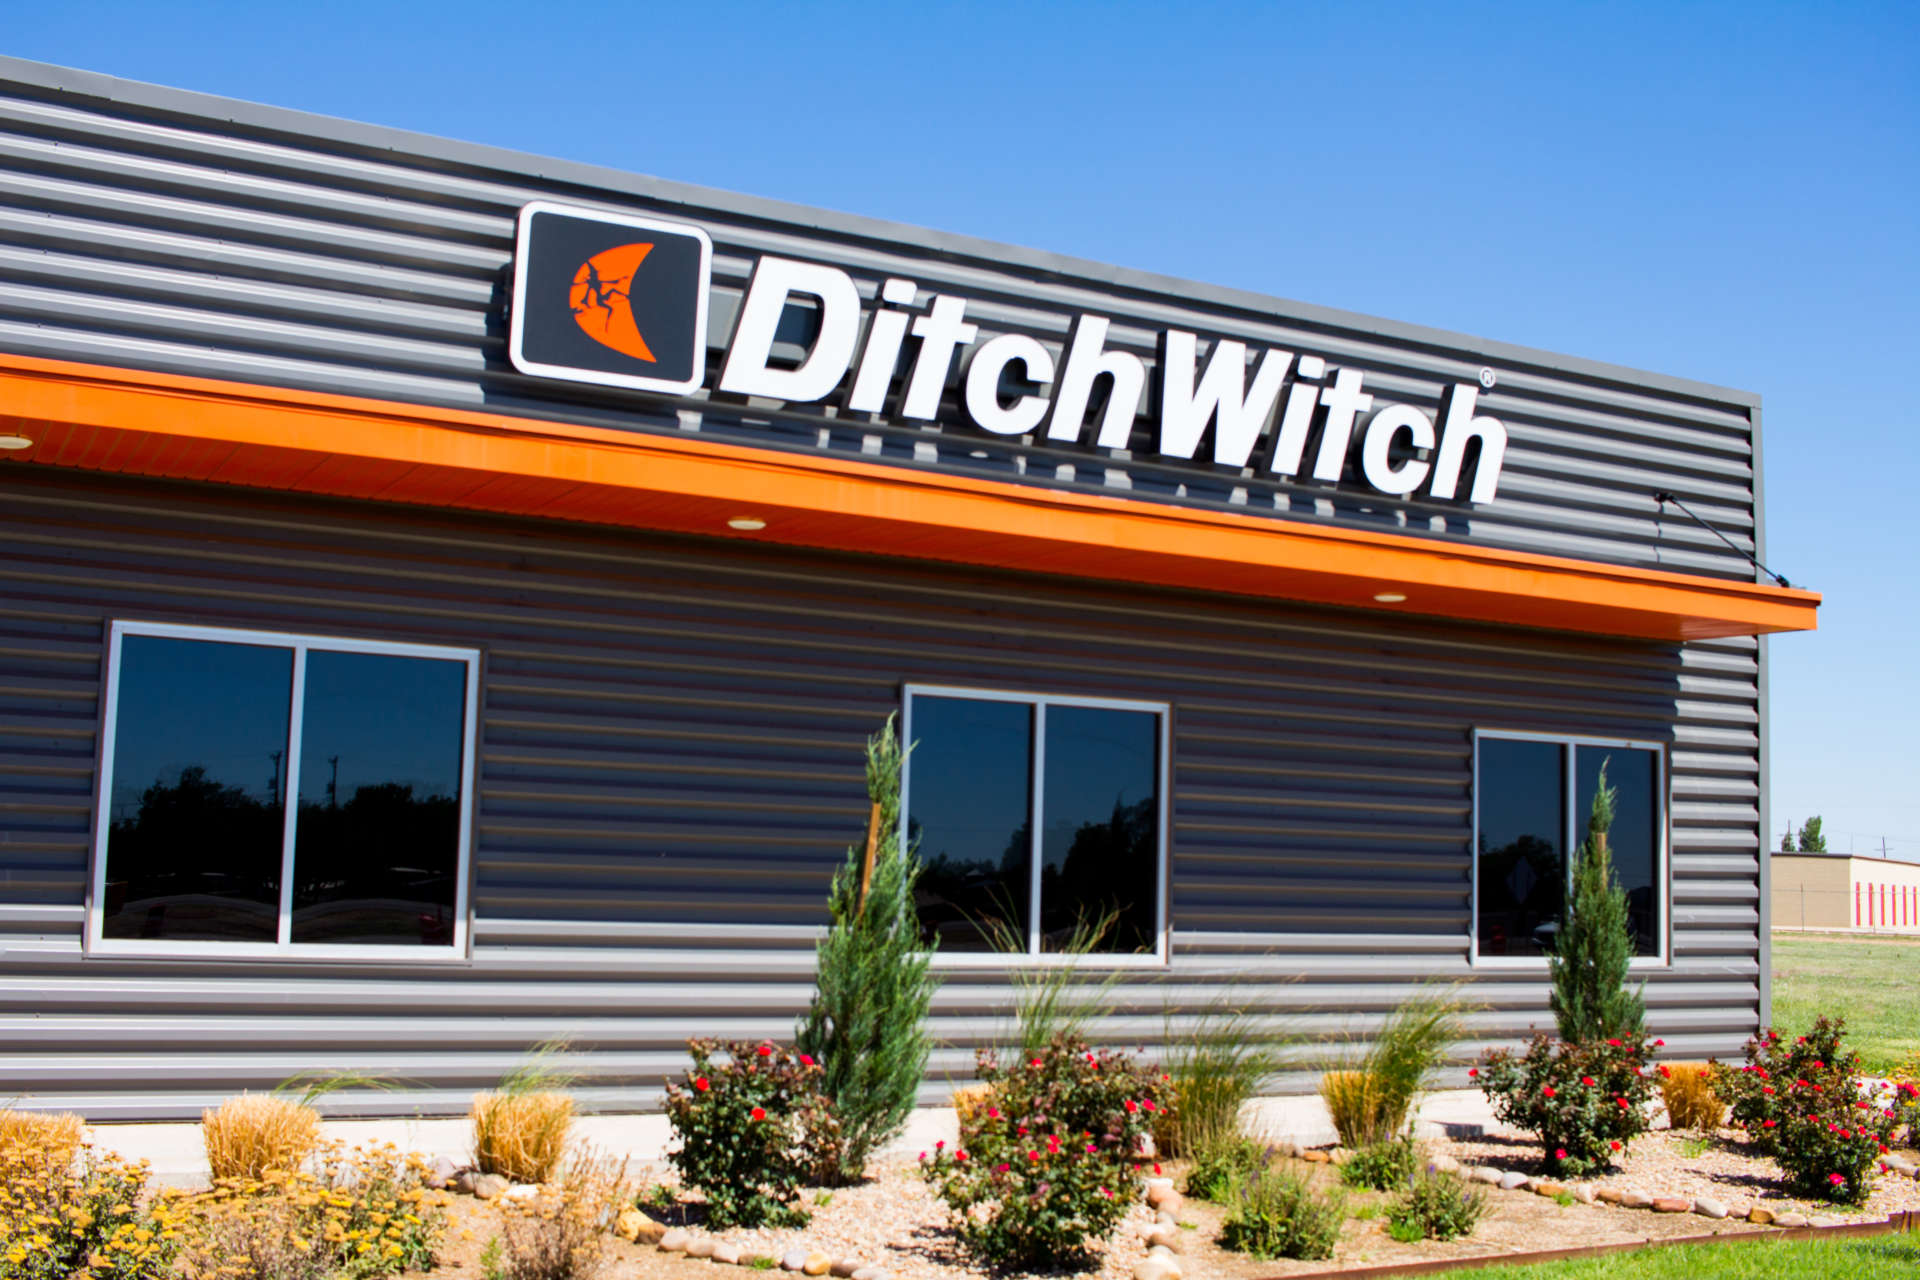 Ditch Witch from the front of building with rocks and landscaping